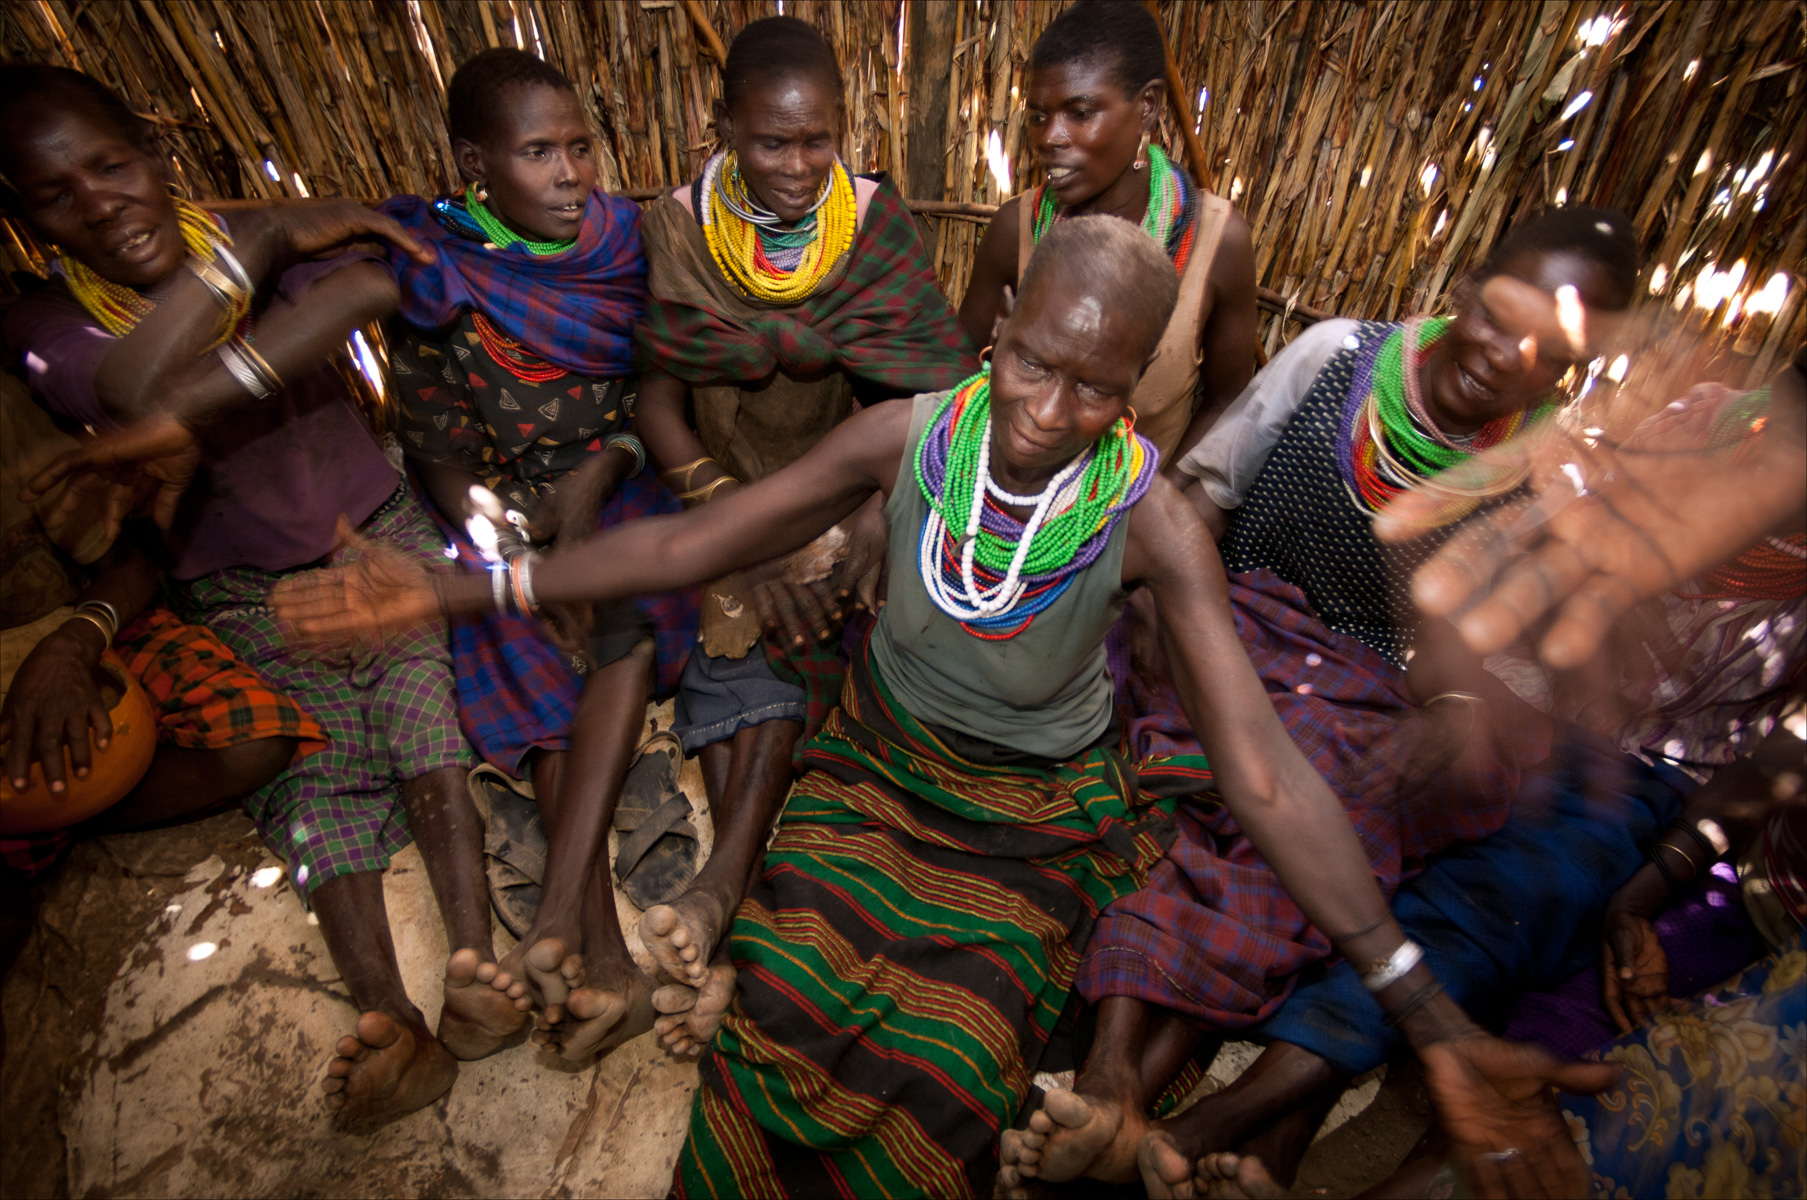 Women celebrate during a dowry ceremony. Wedding ceremonies are one of the most important celebrations in Karamajong culture and cannot take place unless the groom has enough cows and gifts to satisfy the family of the bride. Moroto, Uganda.